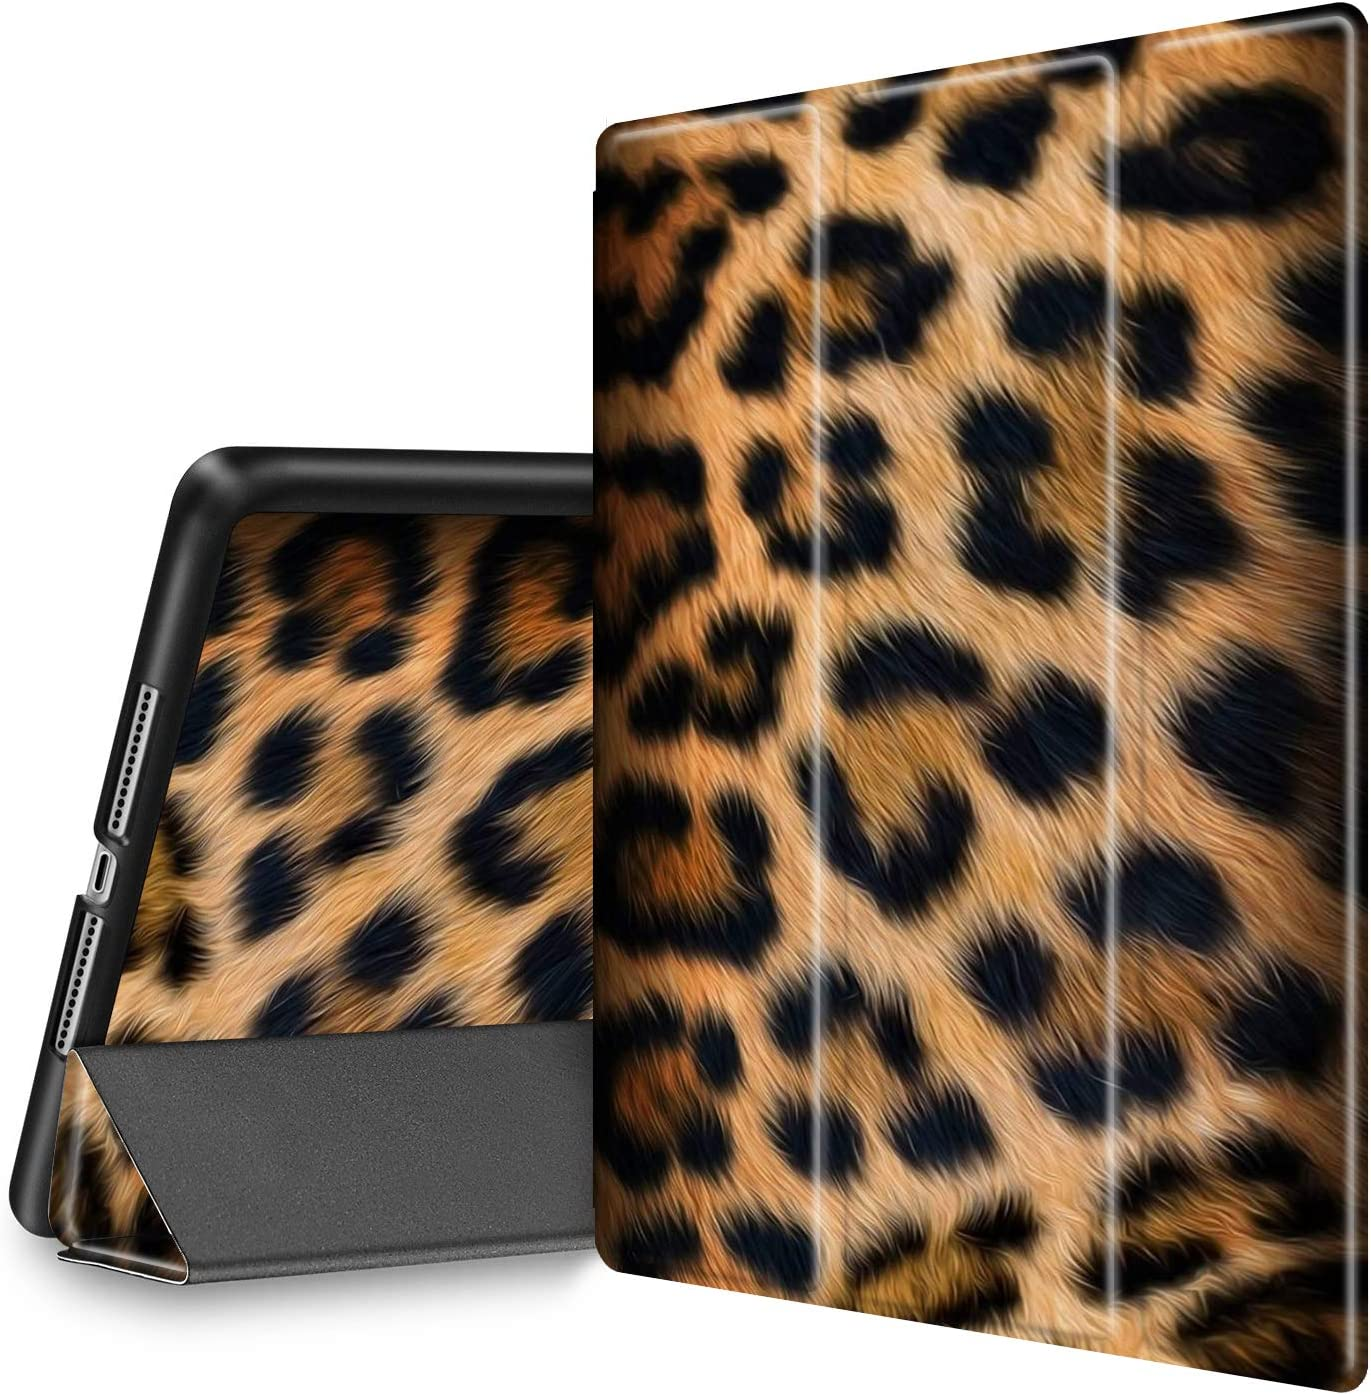 iPad 9.7 2018/2017 Case, iPad Air 2/Air Case, Spsun Lightweight Folio Tri-fold Cover (with Pencil Holder) with Auto Wake/Sleep Smart Case for Apple ipad 6th/5th Gen - Leopard Skin